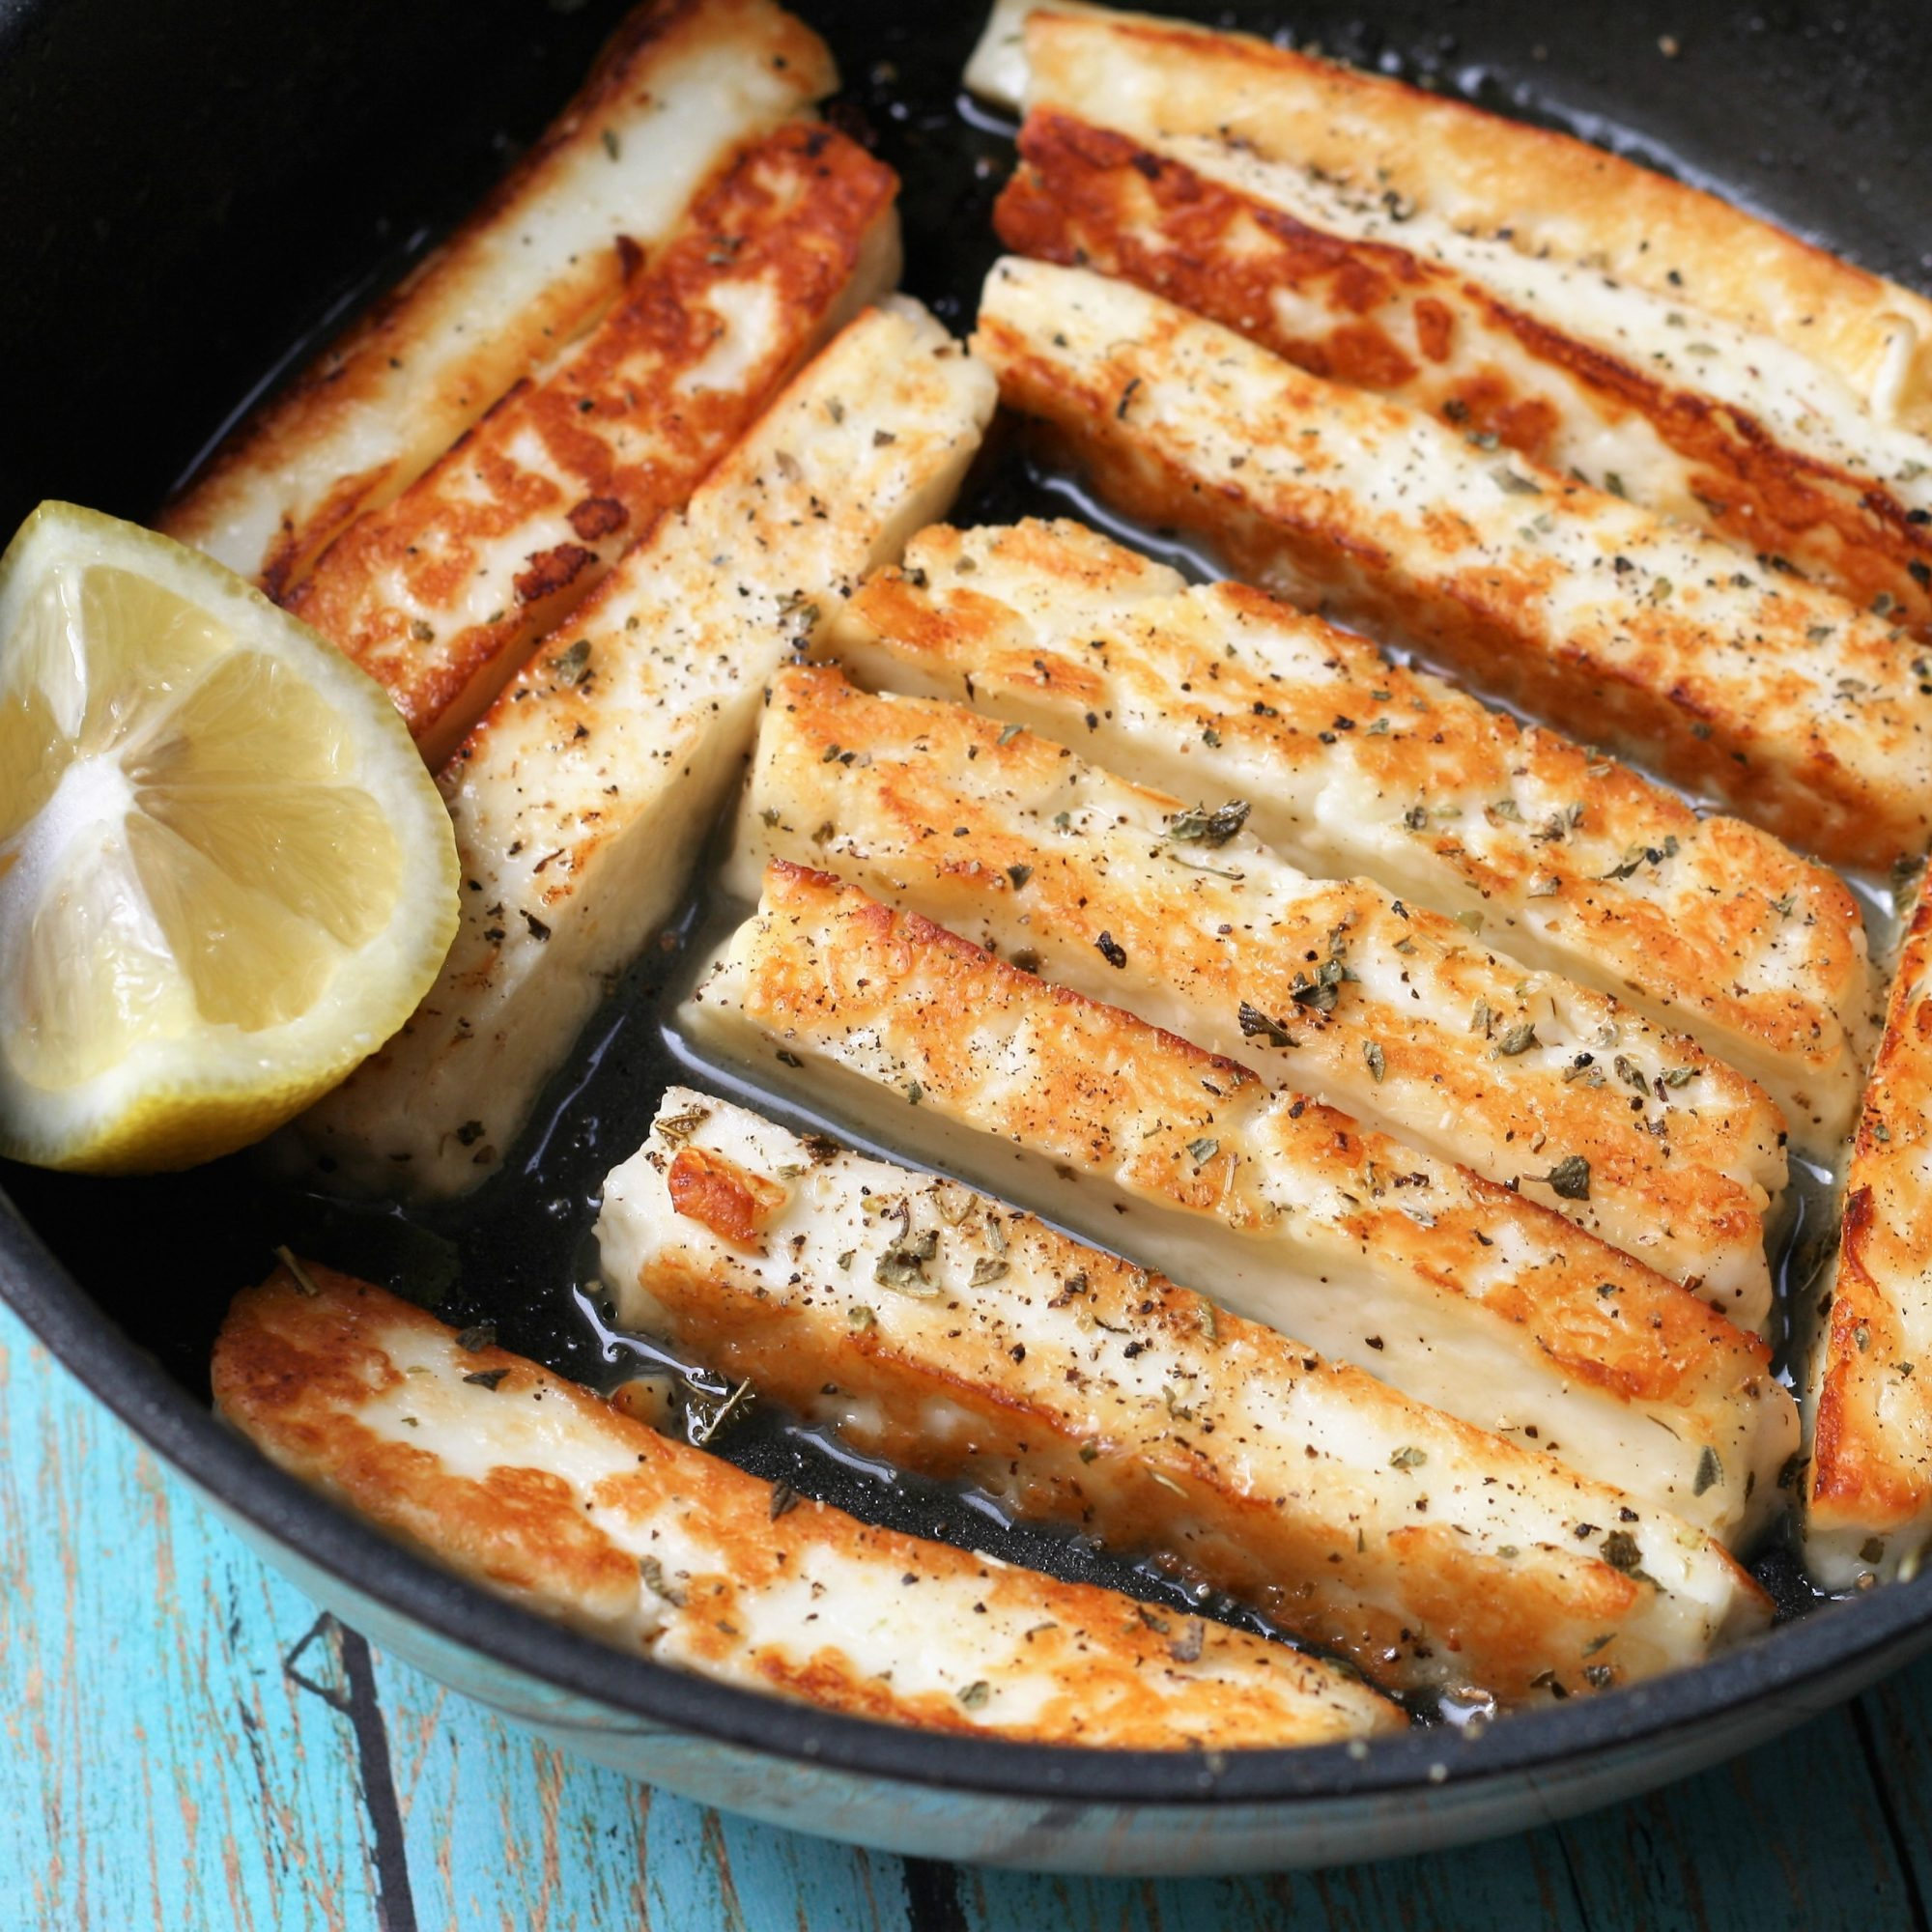 halloumi cheese fingers in a frying pan with lemon wedge